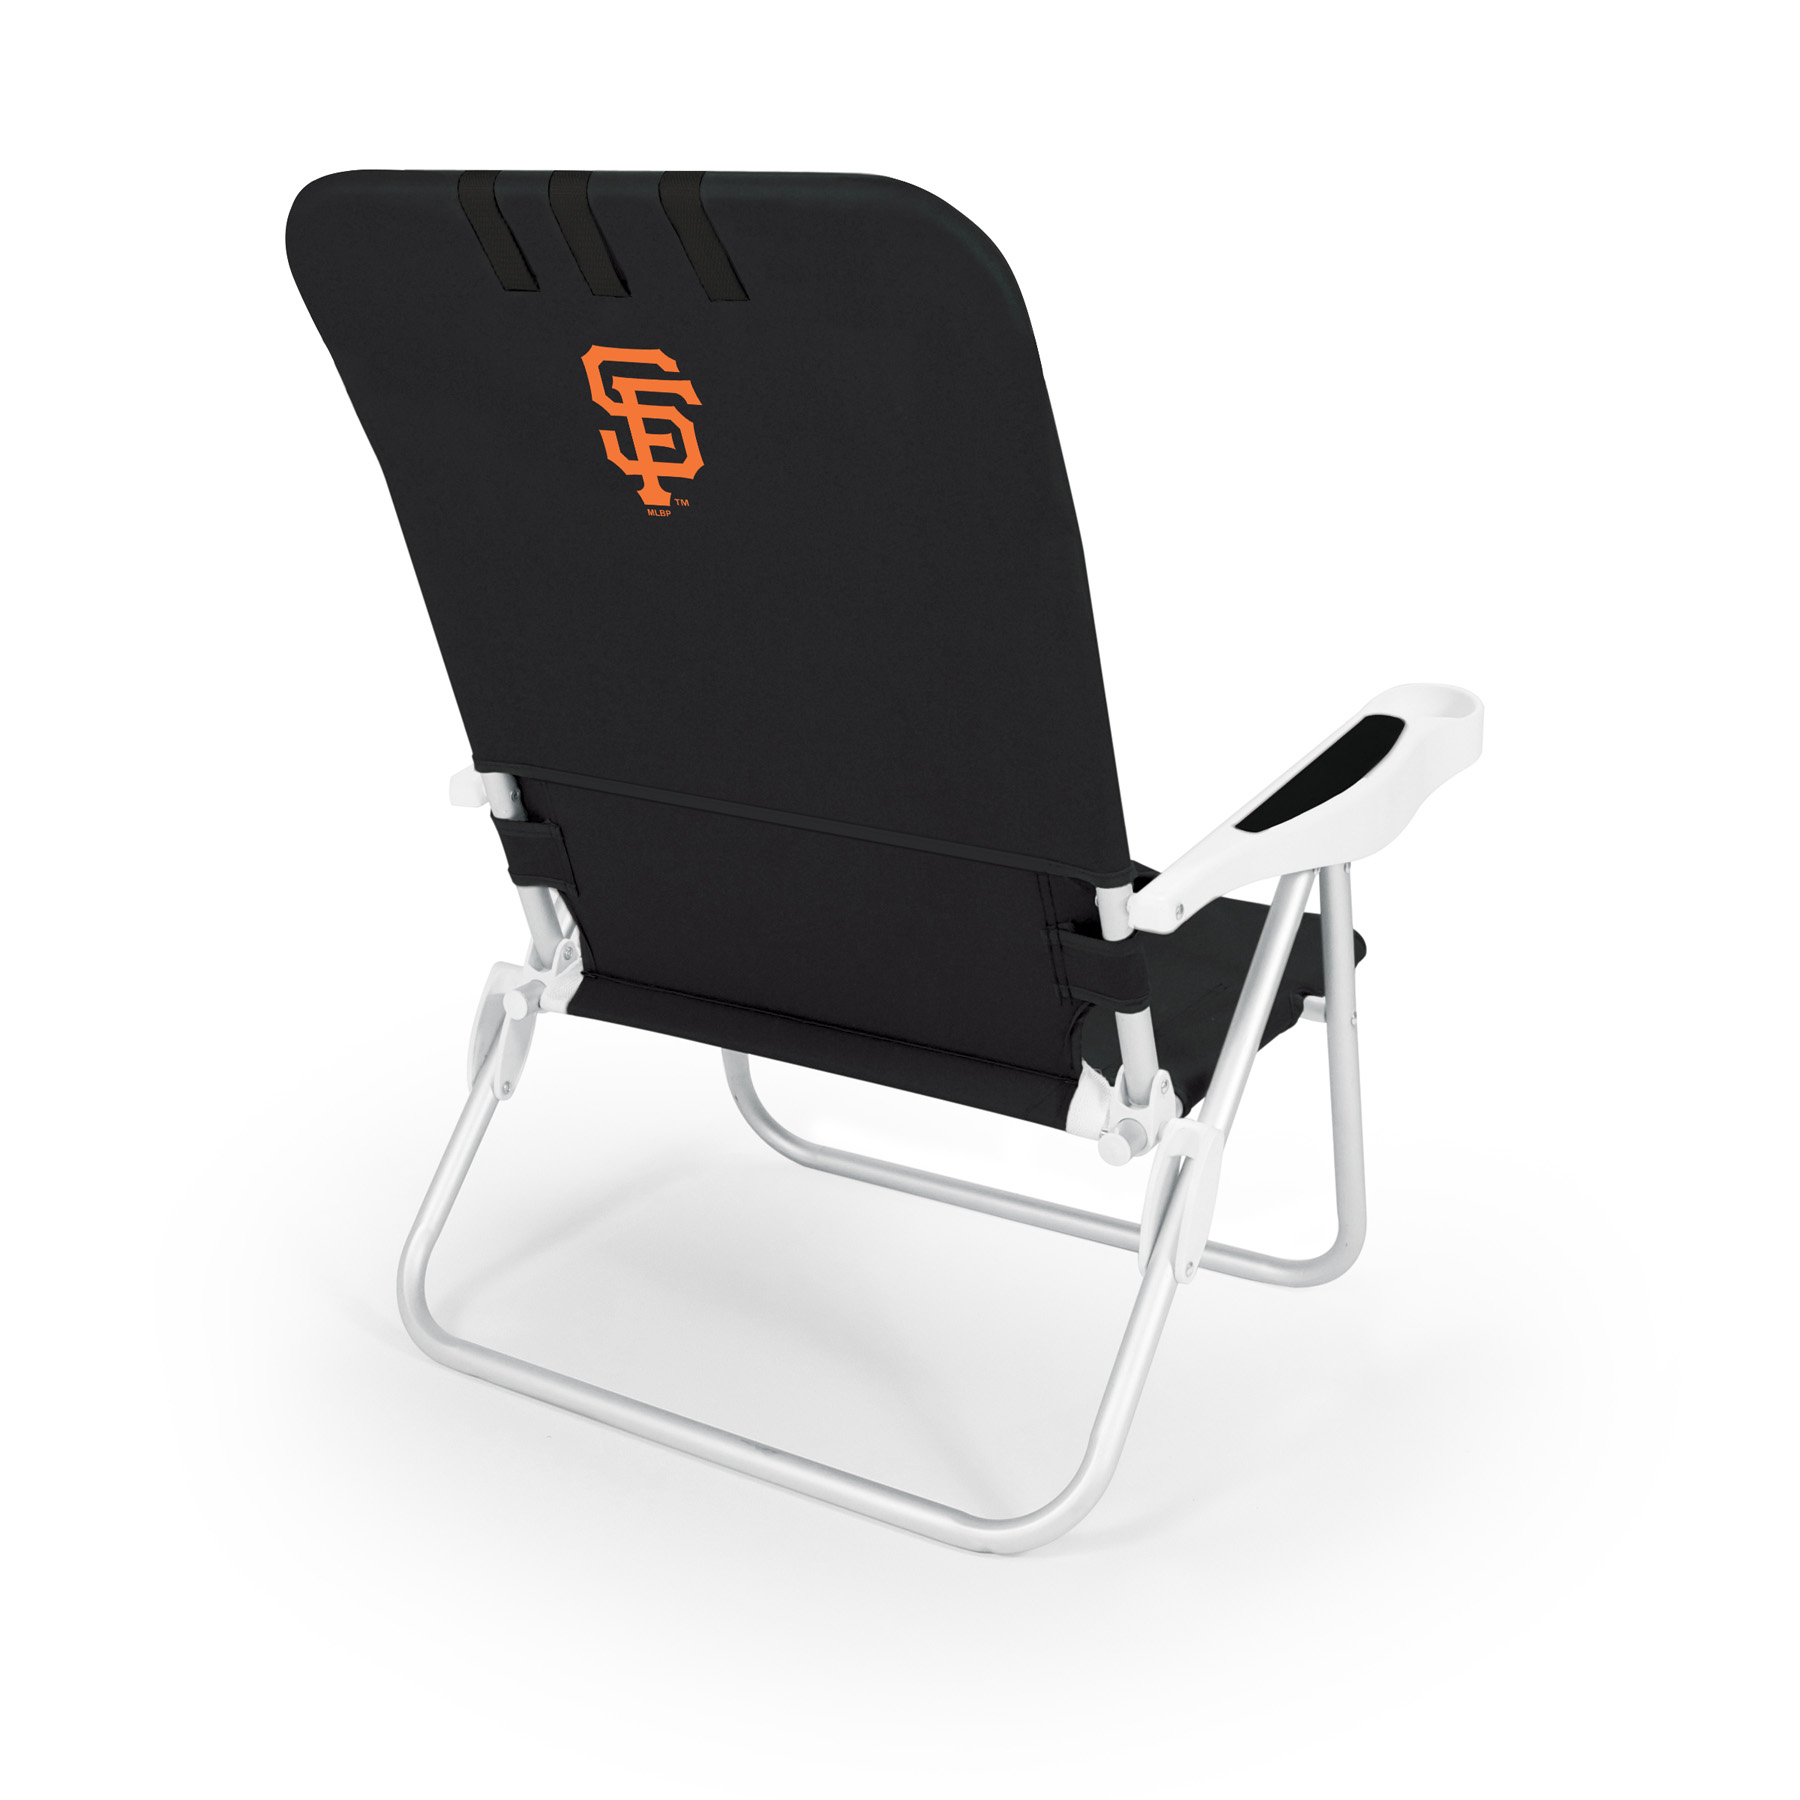 Picnic Time Monaco Beach Chair - MLB - Black